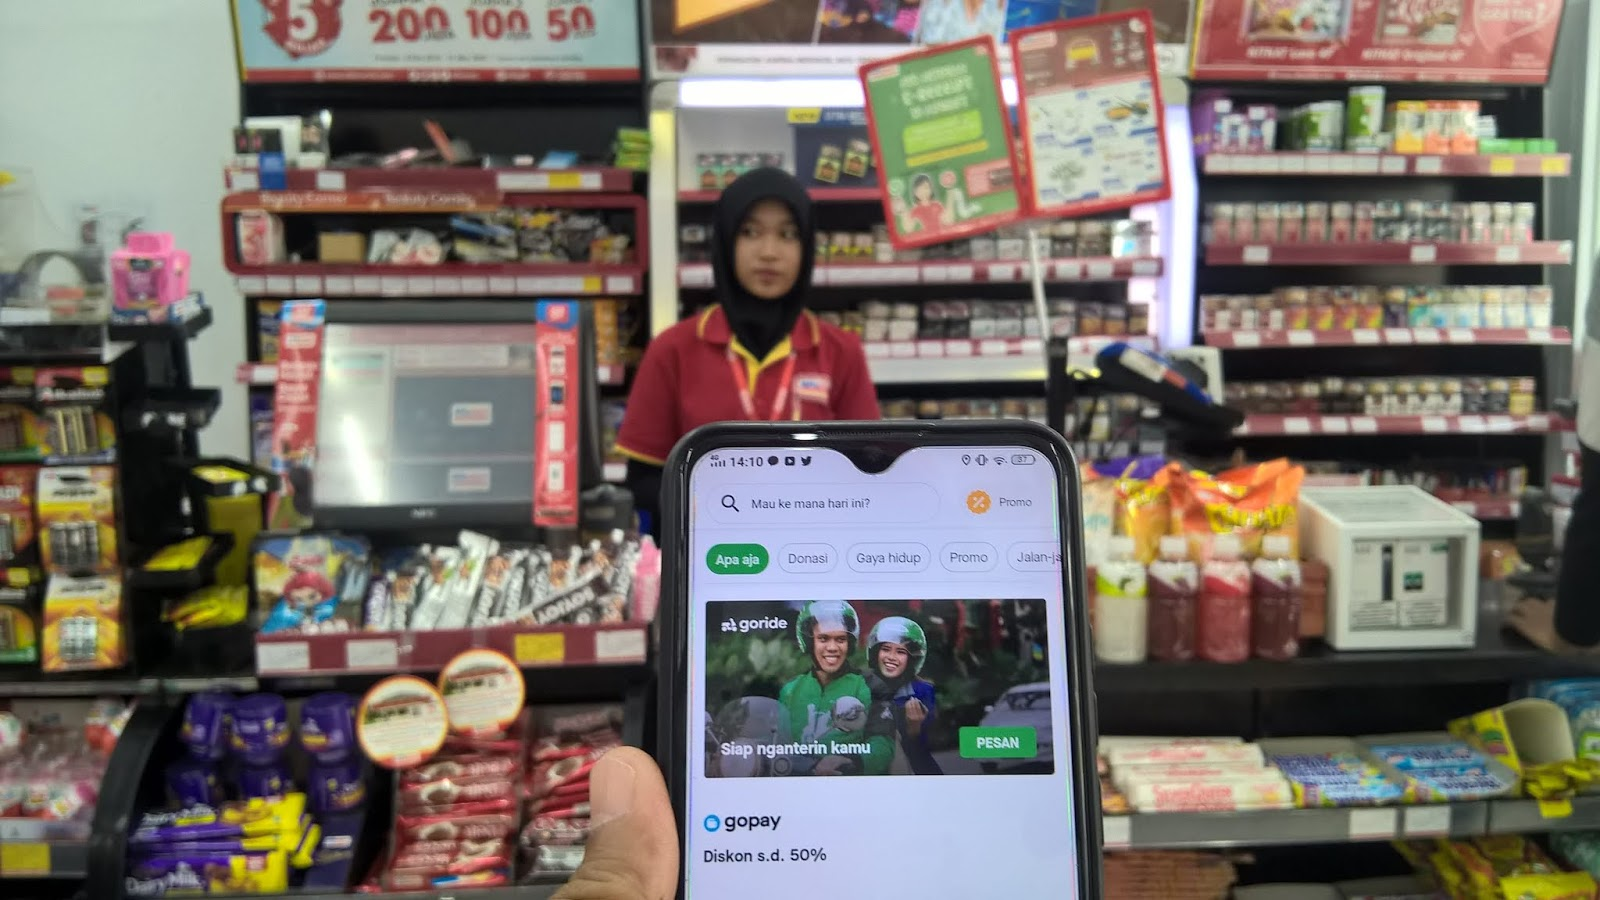 Isi Top Up Gopay di Minimarket